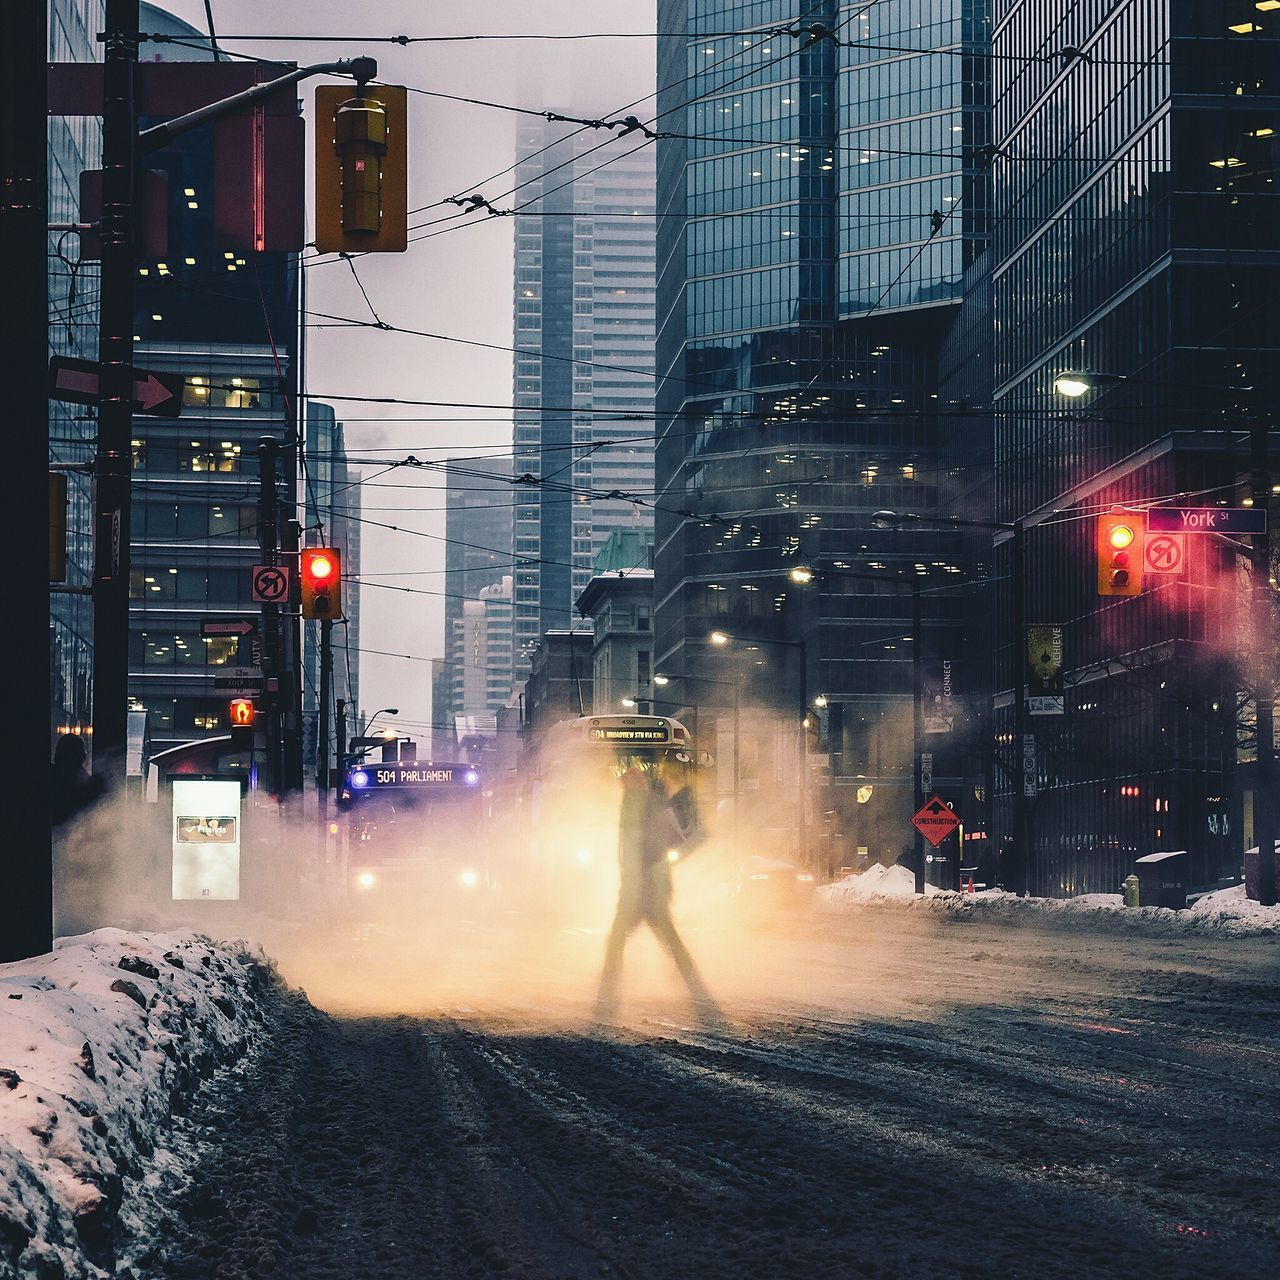 Digital composite image of person crossing street in city during winter